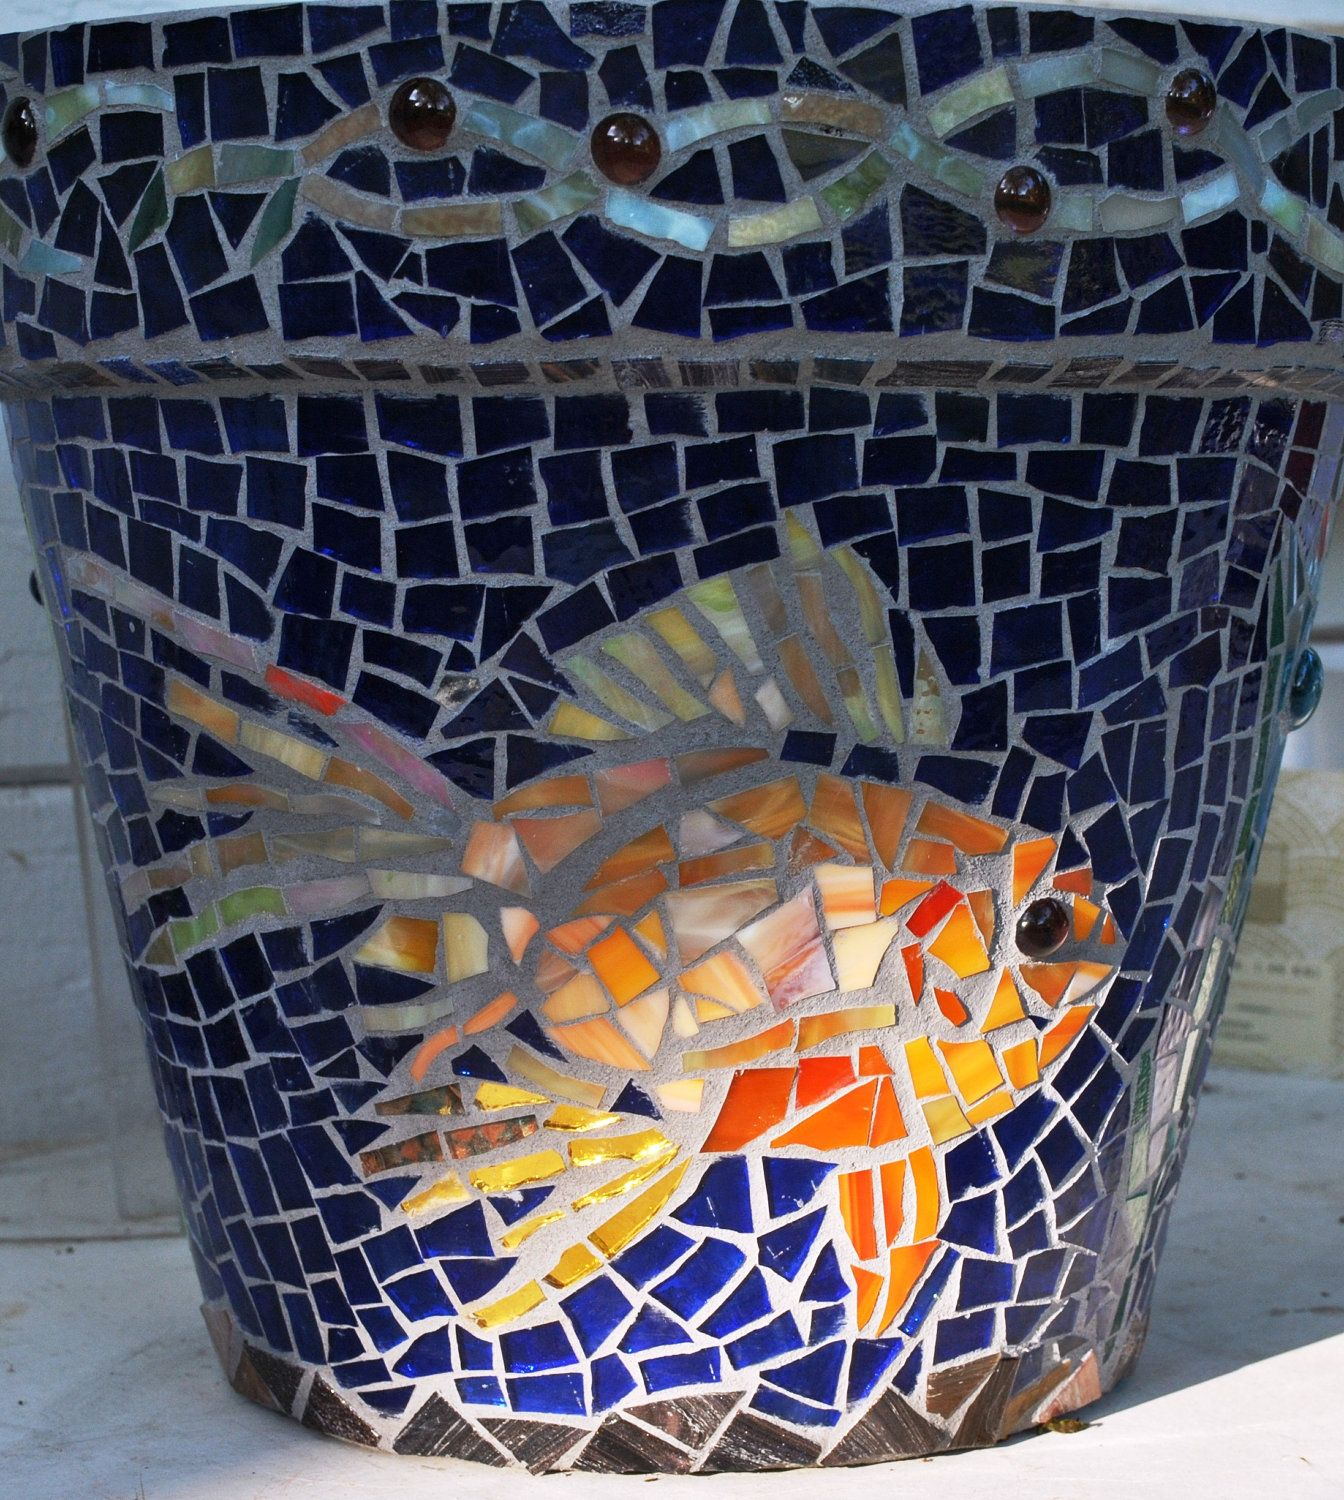 Planters For Sale Online Mosaic Koi Fish Planter Stained Glass In Blue And Gold